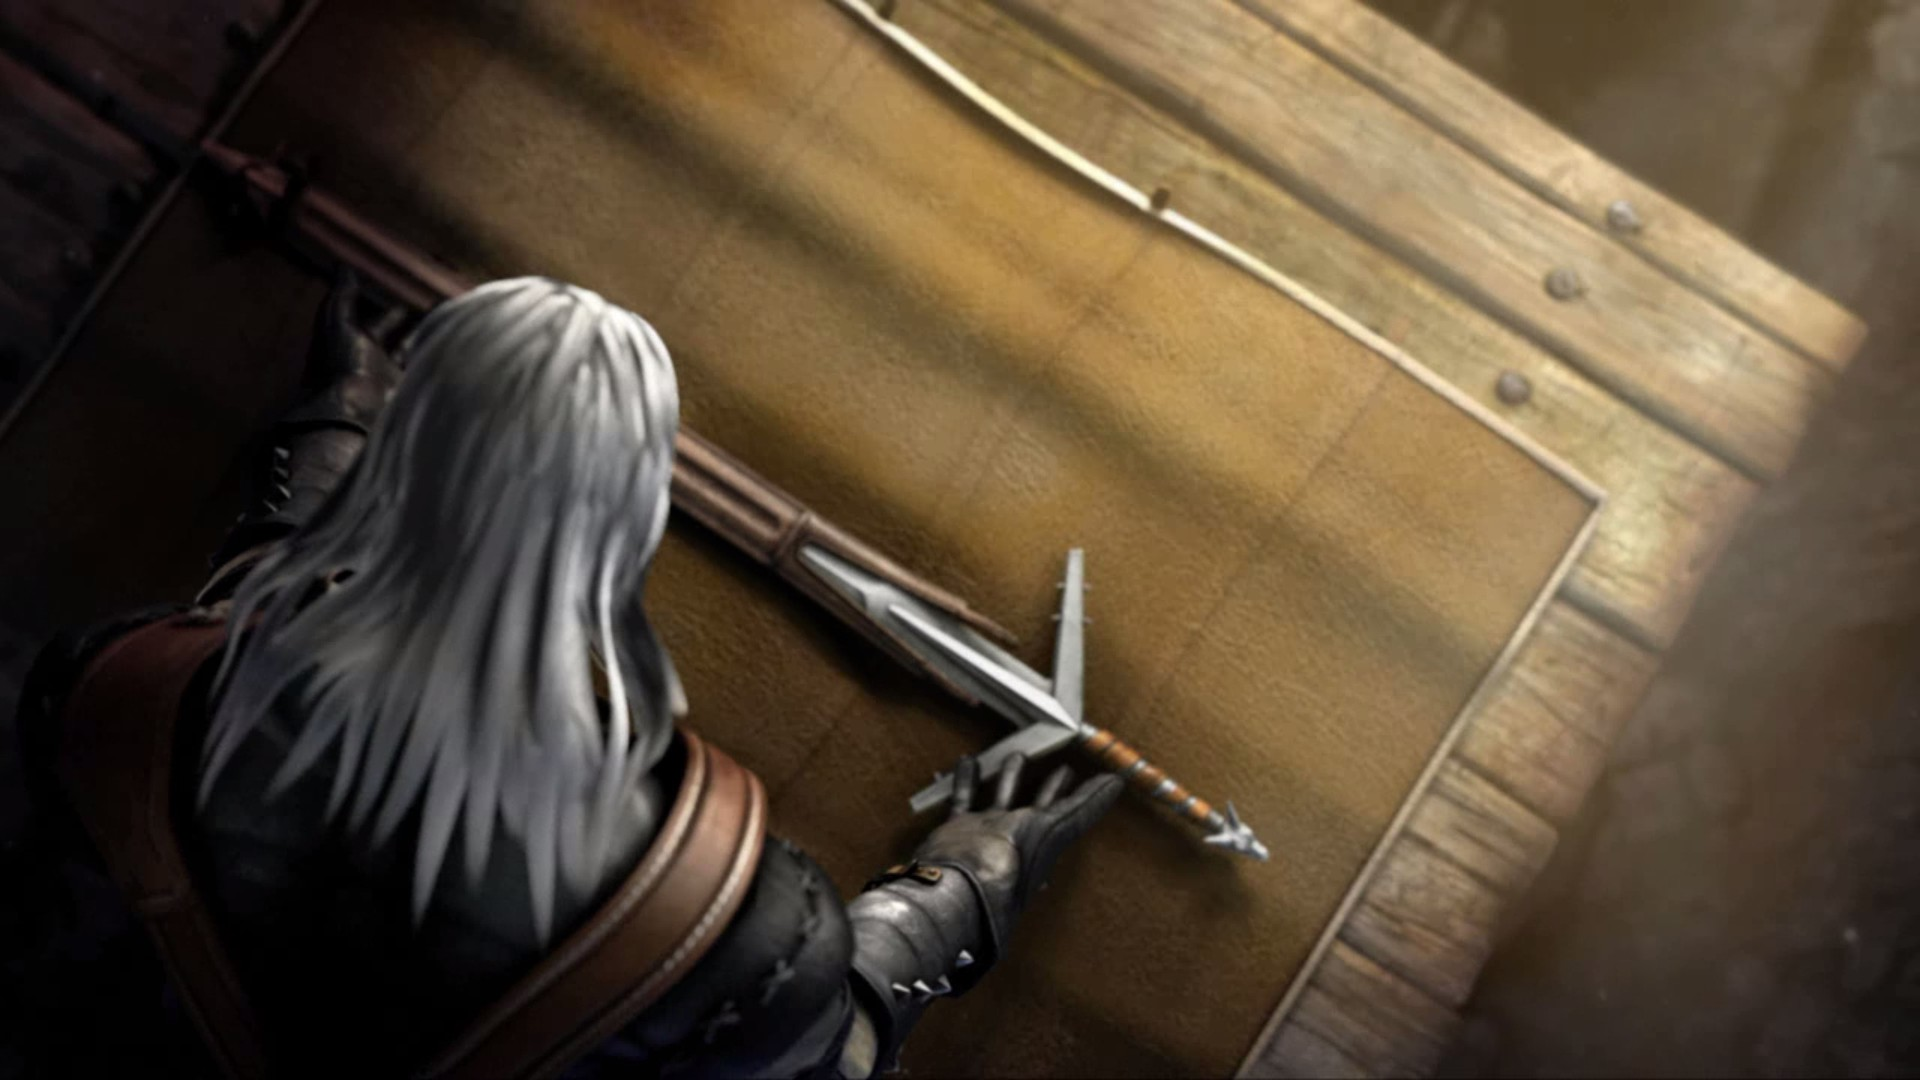 20171028180246_1.jpg - Witcher, the